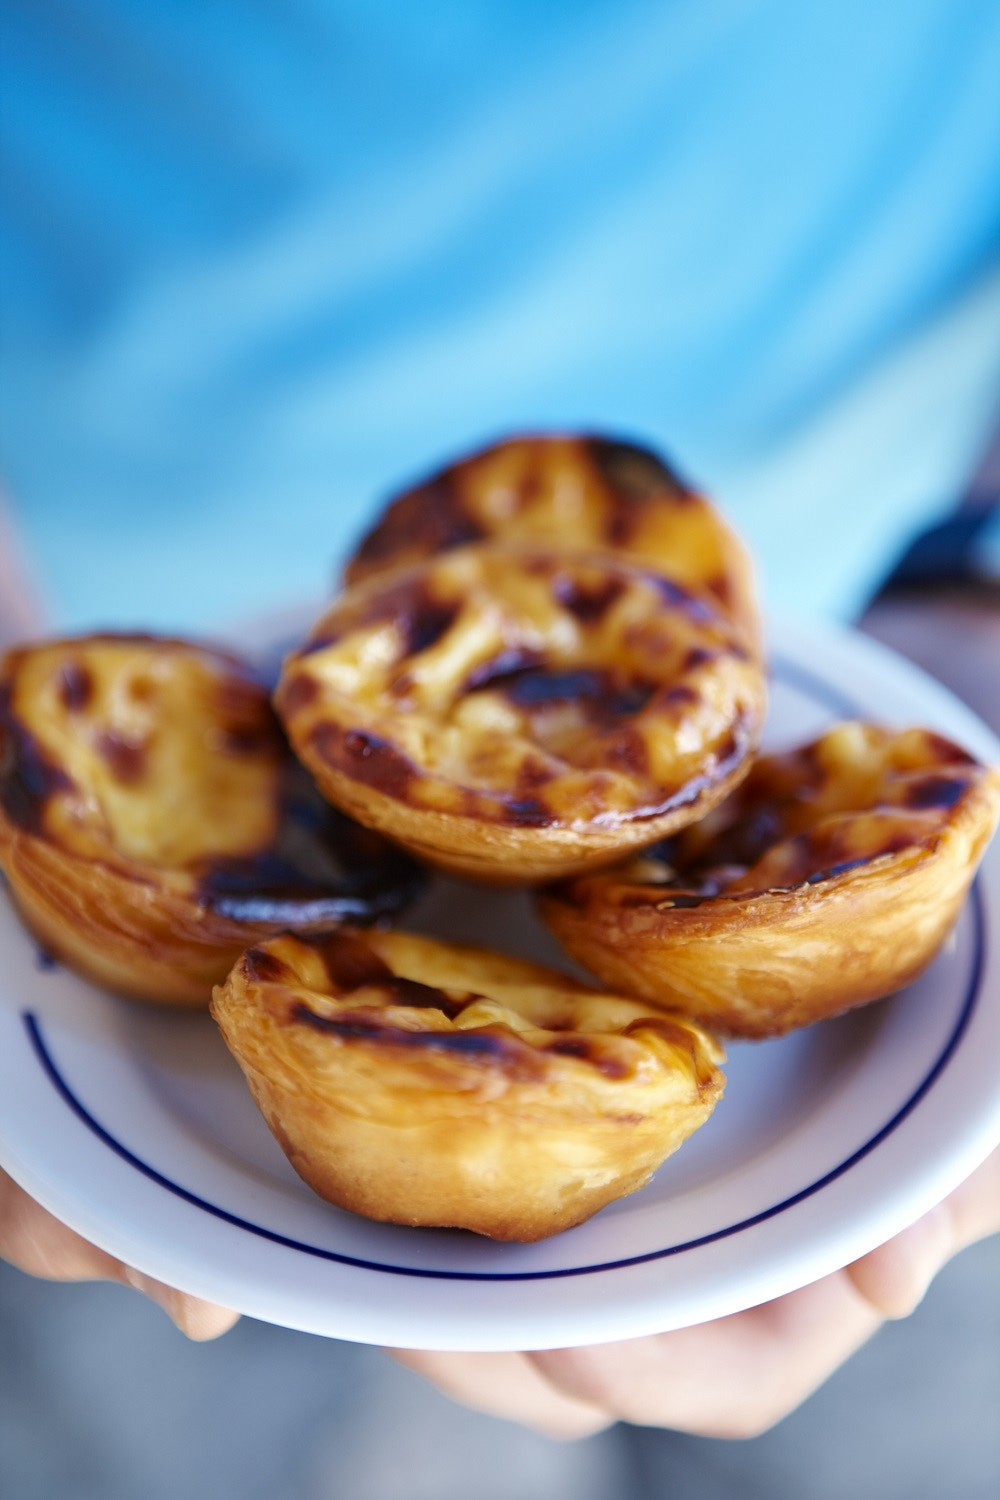 Portuguese tarts from Pateis de Belem.